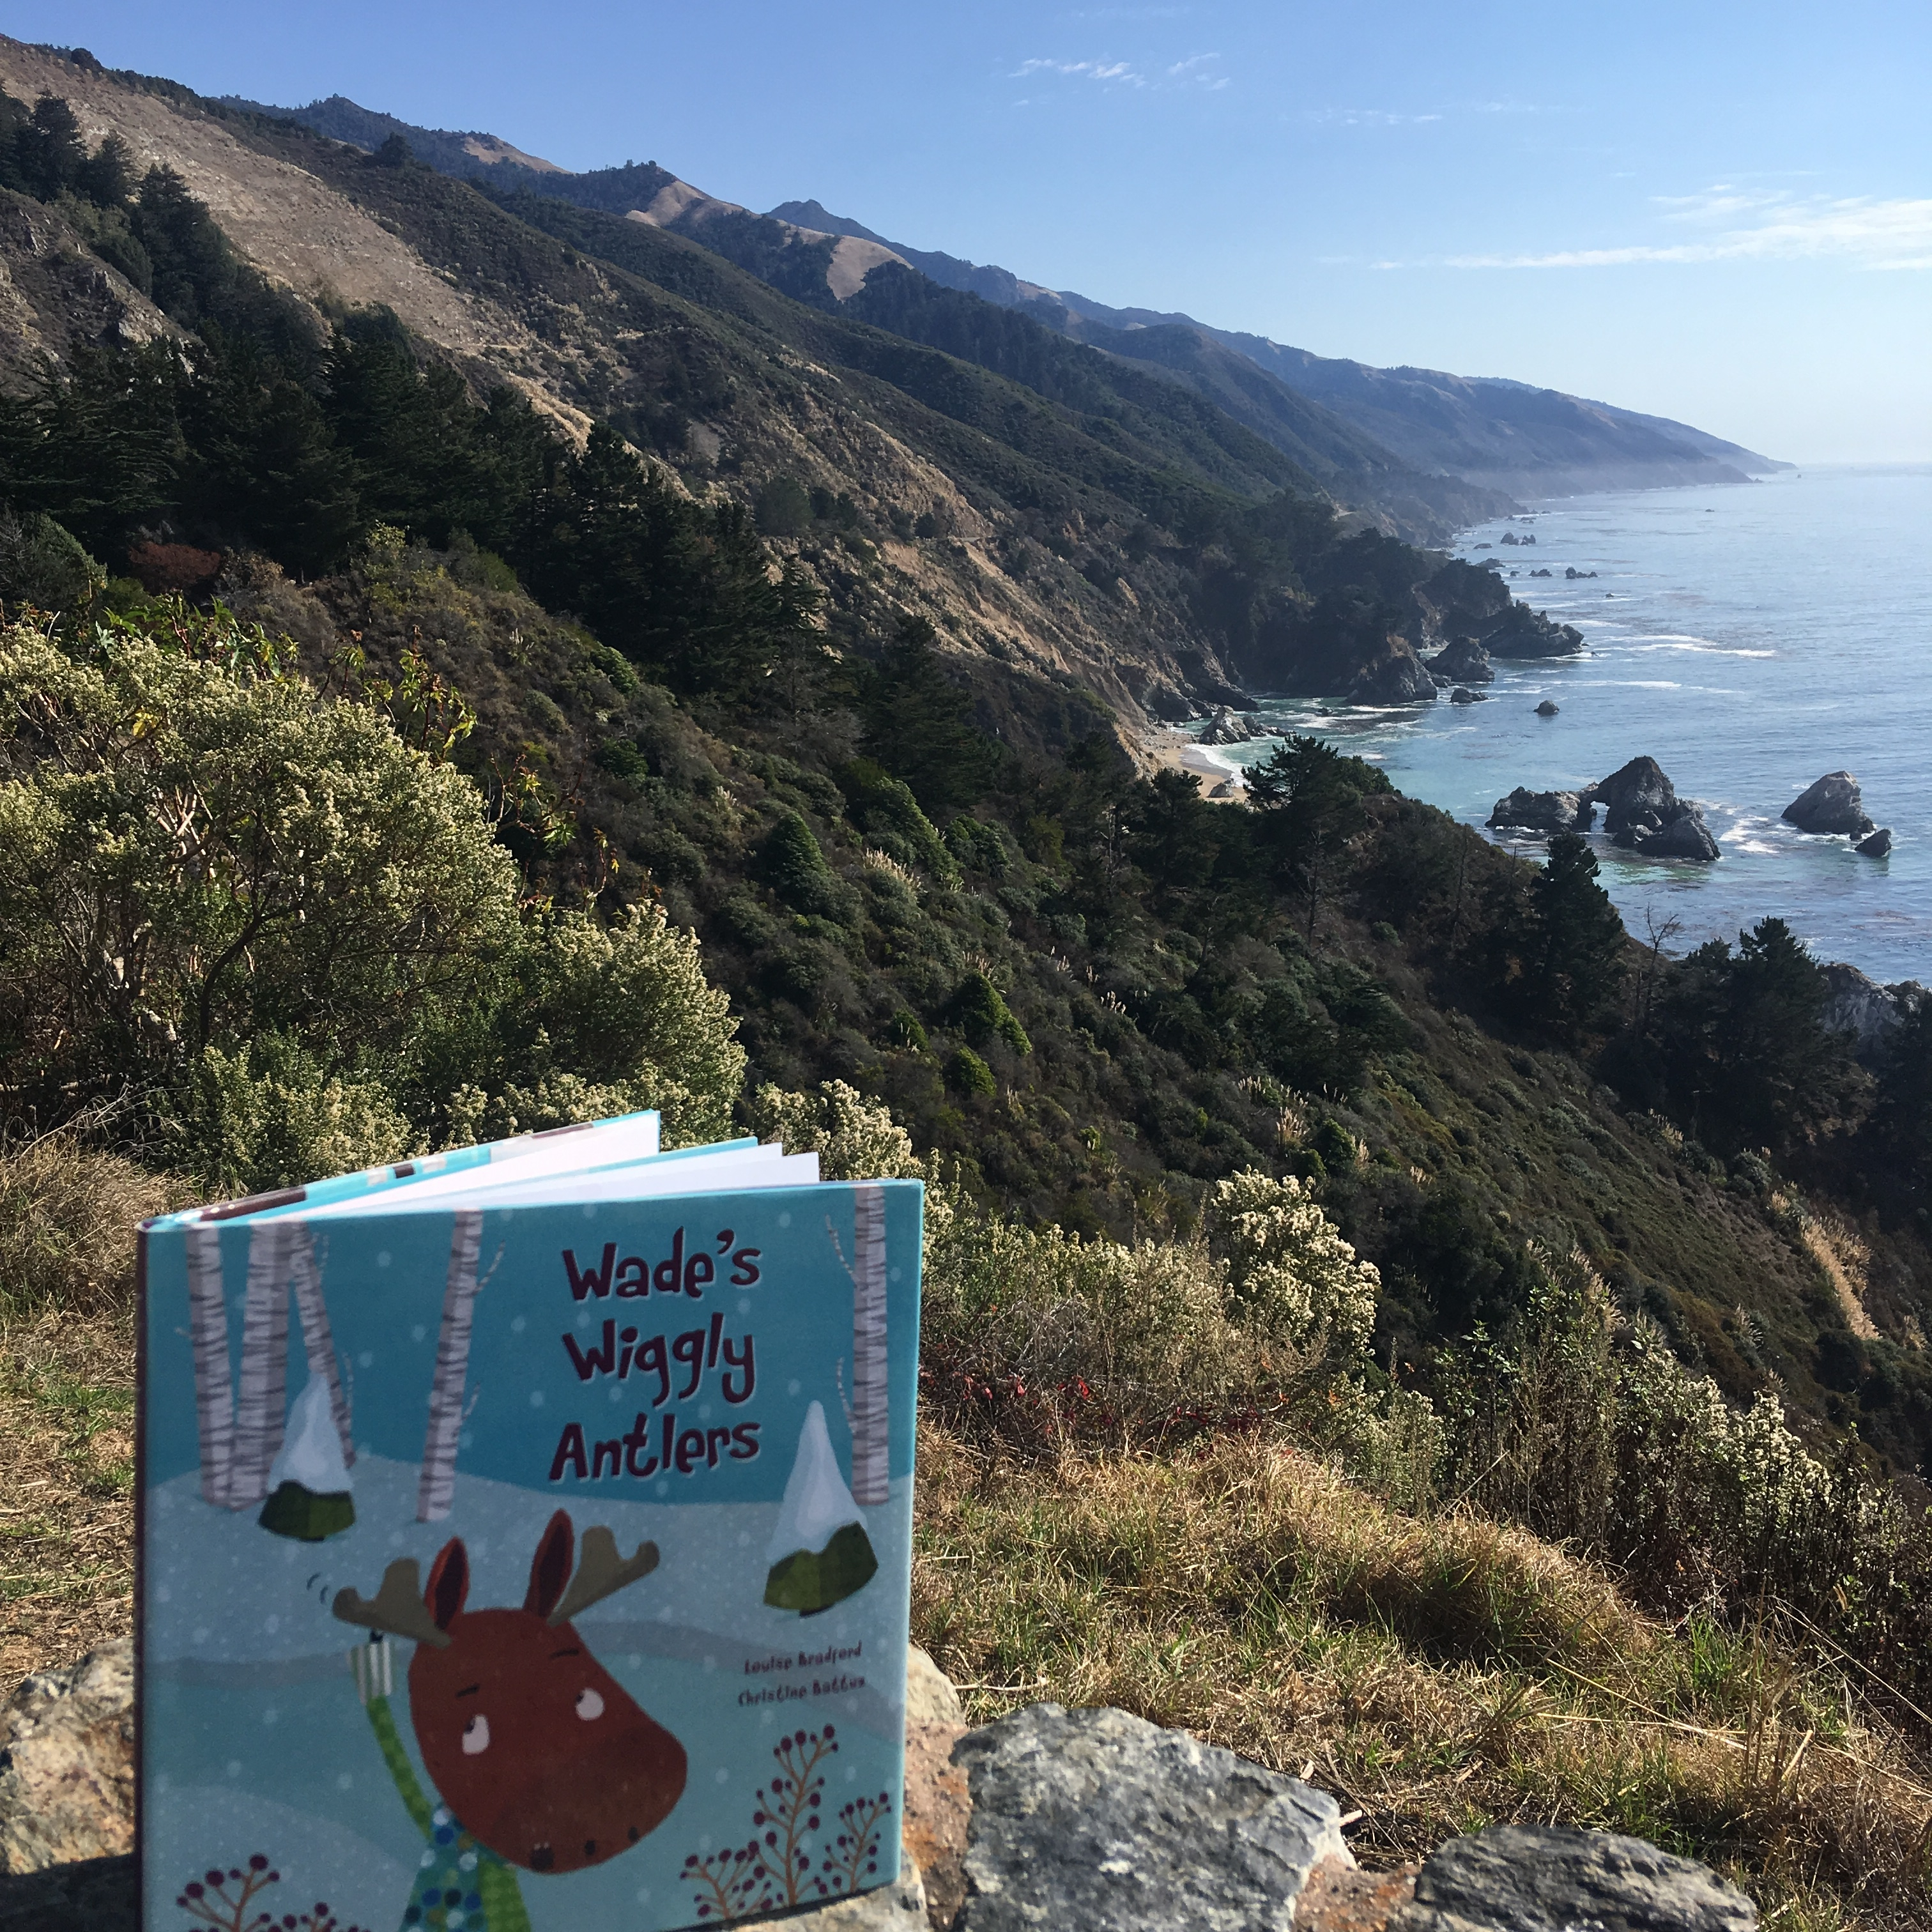 Wade's-Wiggly-Antlers-Big-Sur-Louise-Bradford